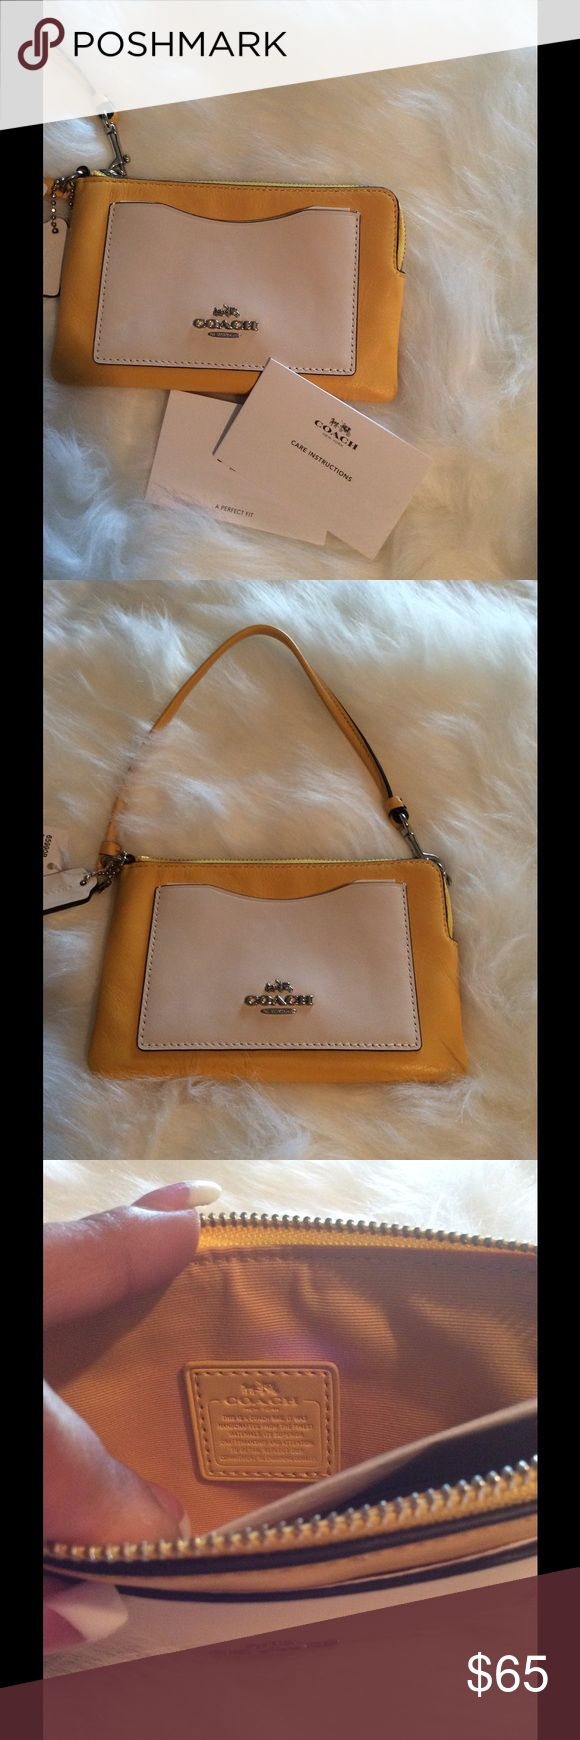 Coach Authentic leather Wristlet. Authentic leather Coach New York Wristlet. Registered trademark with tags. Beautiful Canary/ Chalk bone color. Absolutely gorgeous!  6 1/2 X 4 inches Coach Bags Clutches & Wristlets